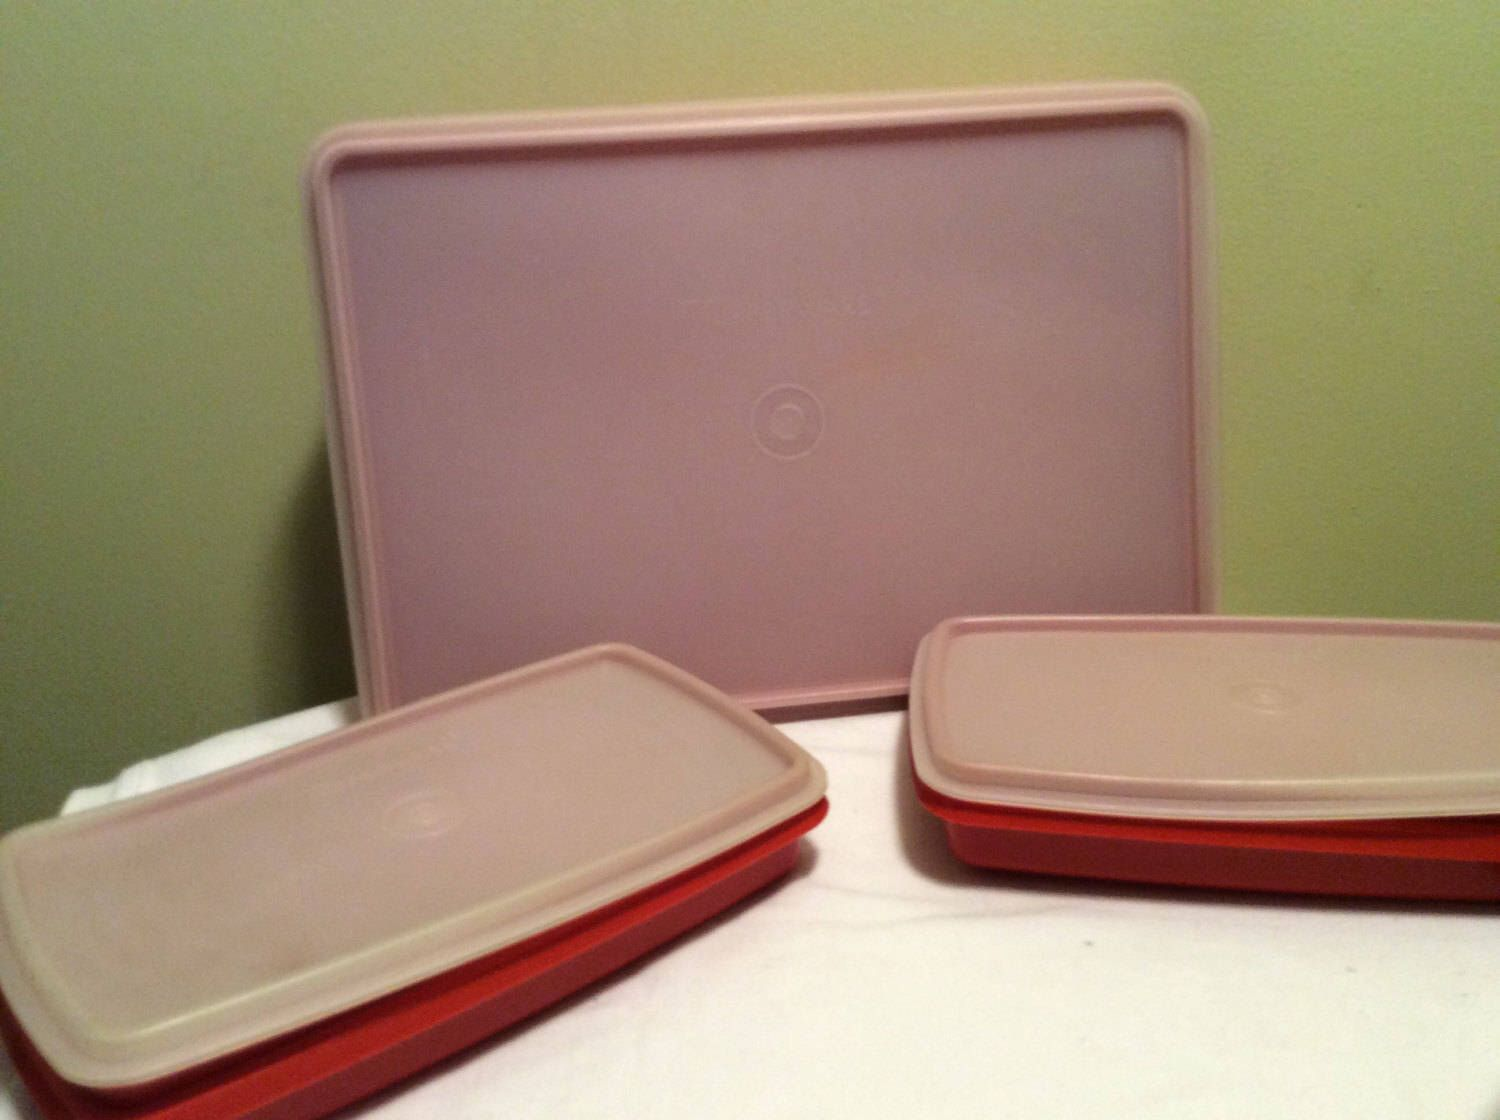 Craft containers with lids - Vintage Tupperware Set Of Three Paprika Red Dark Orange Food Craft Storage Plastic Containers With Lids 816 Rectangle Square